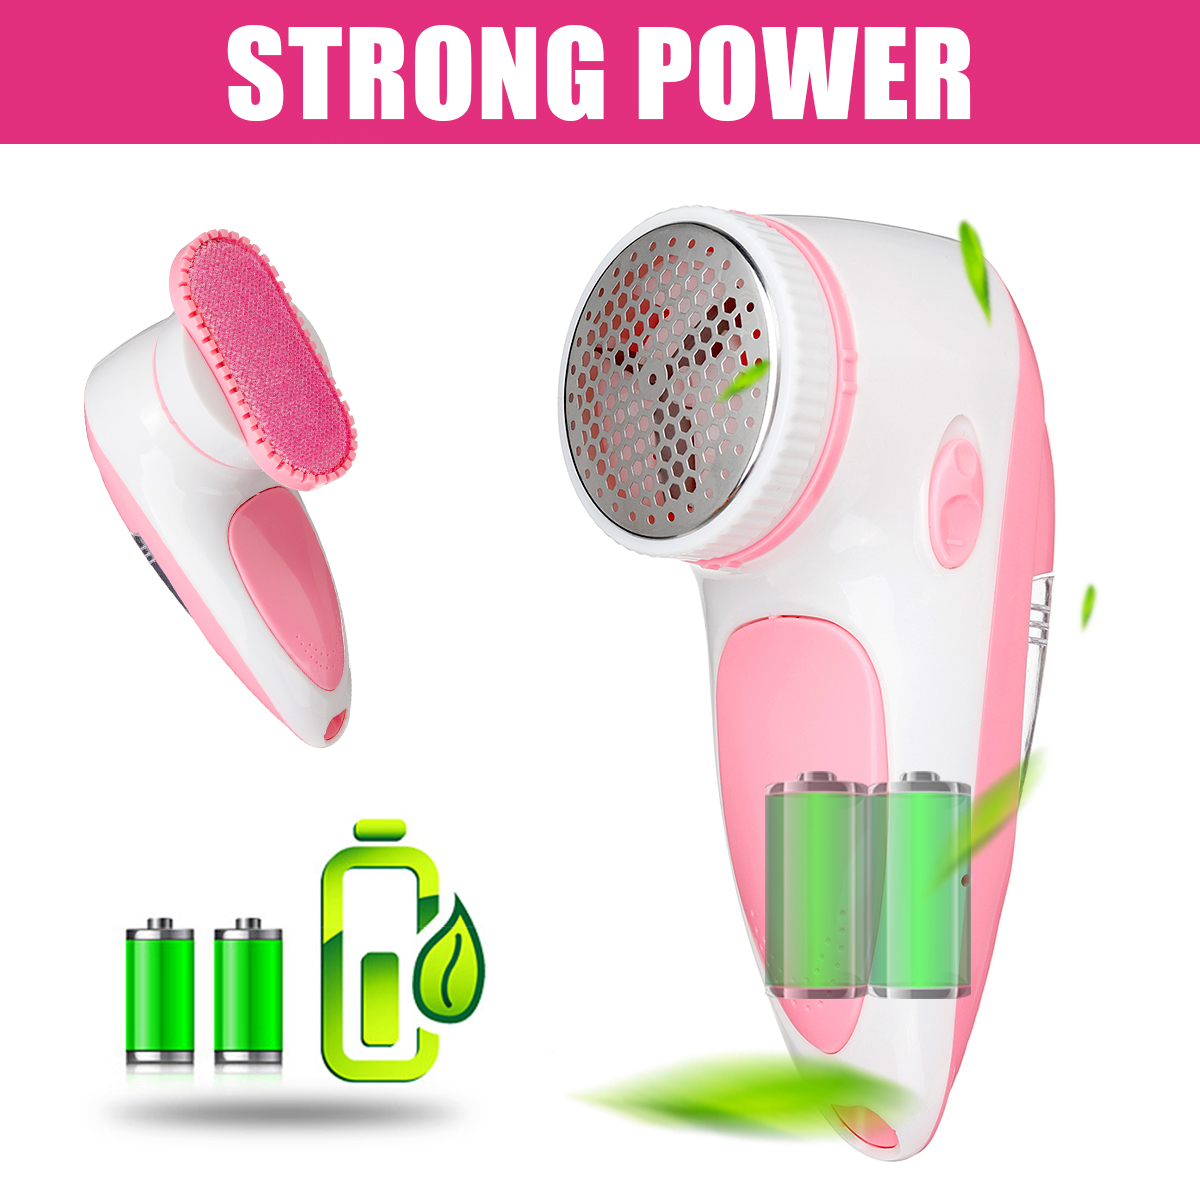 Portable Fabric Shaver Electric Lint Remover Sweater Shaver Fuzz Pill Fuzz Cashmere Wool Rechargable